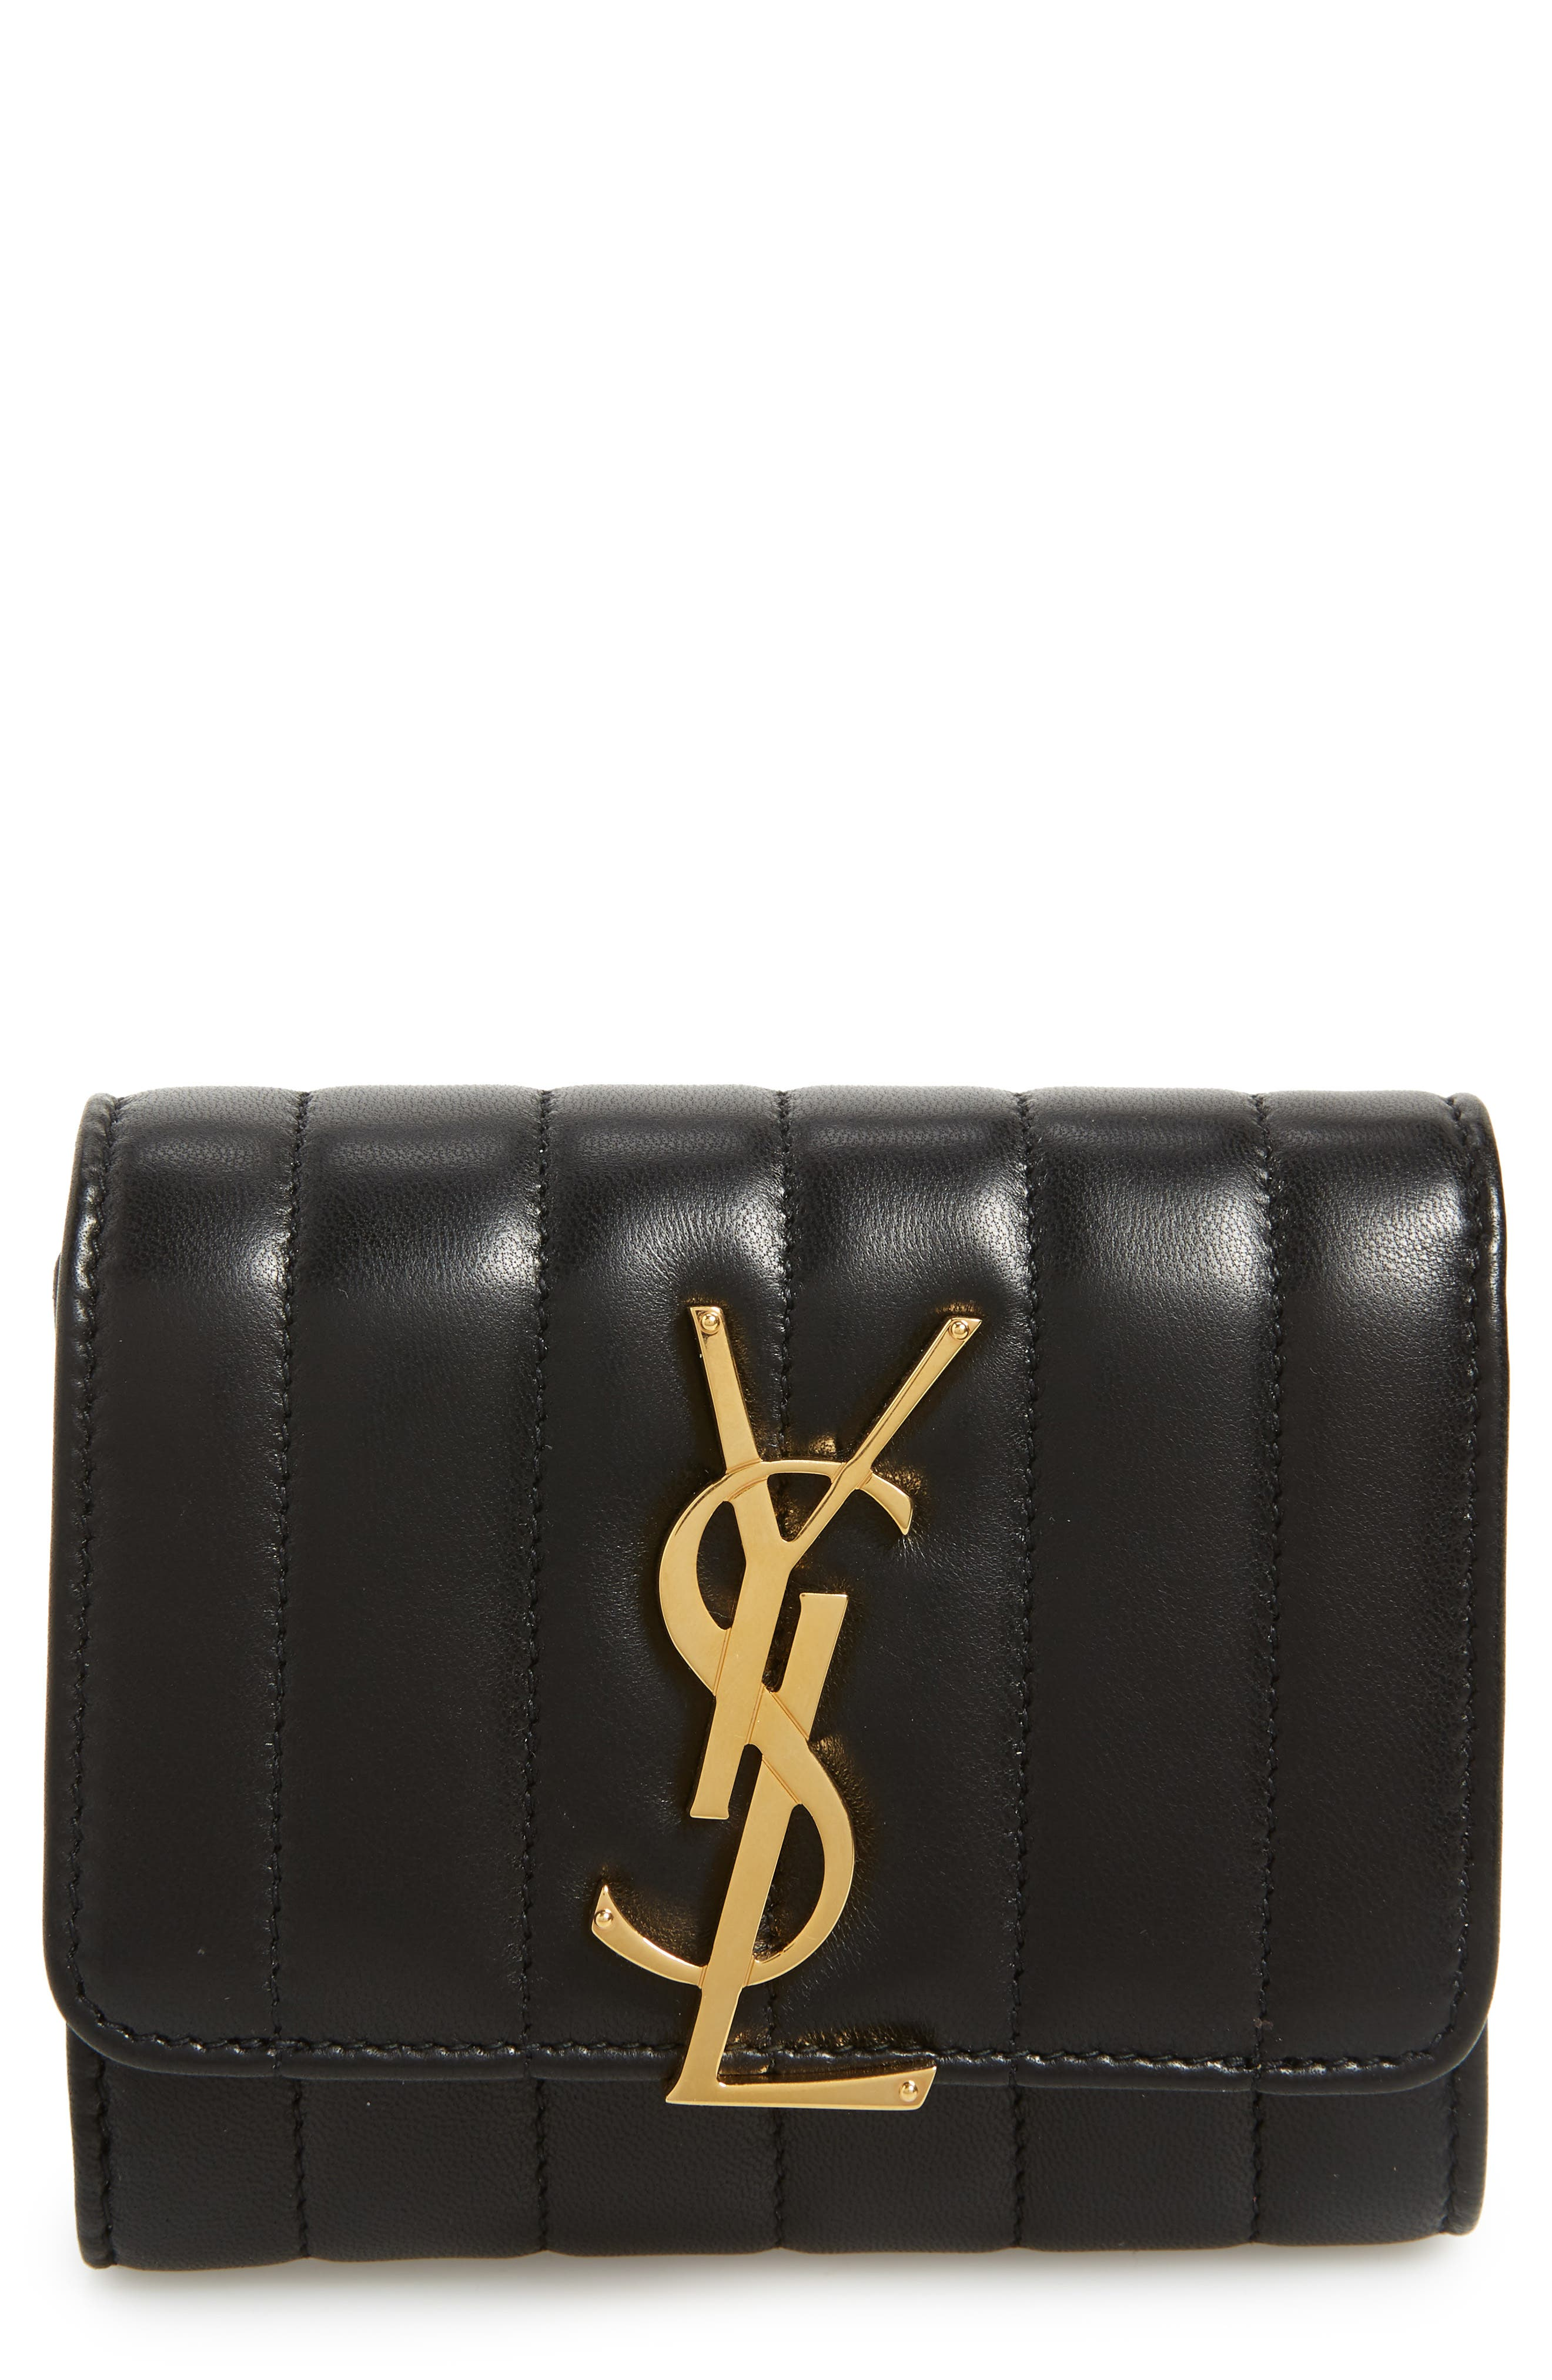 Vicky Lambskin Leather Trifold Wallet,                             Main thumbnail 1, color,                             NOIR